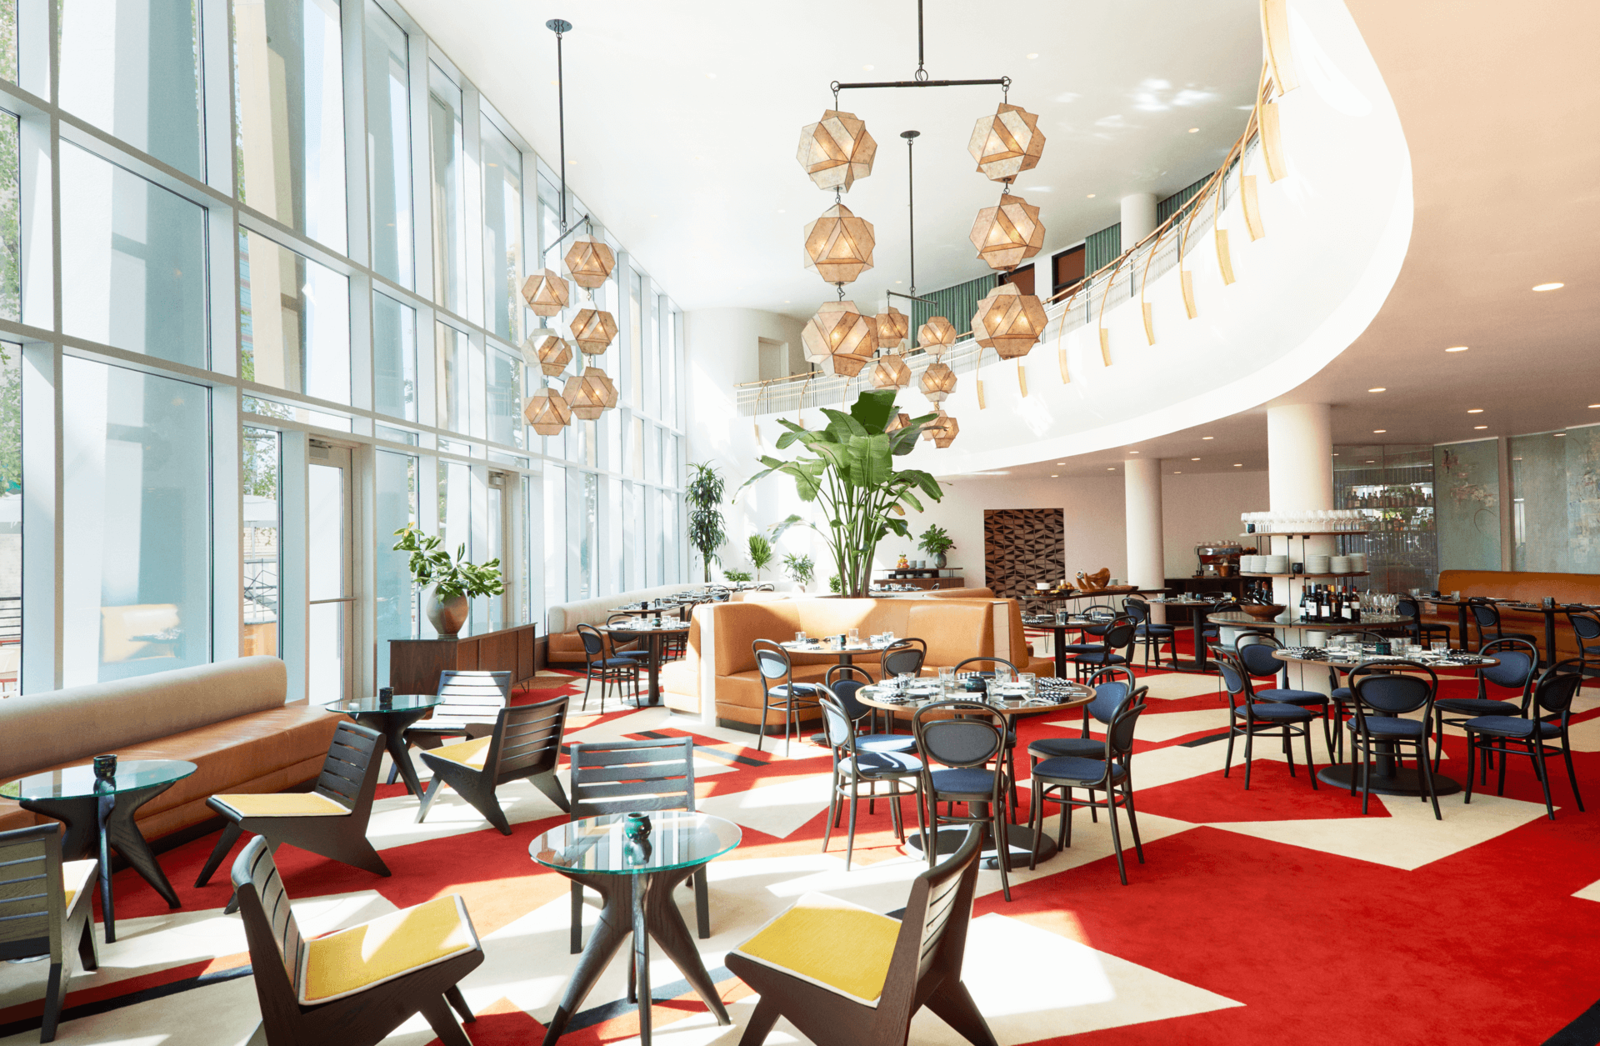 Follow Us To 10 Midcentury Modern Inspired Hotels Around The Globe